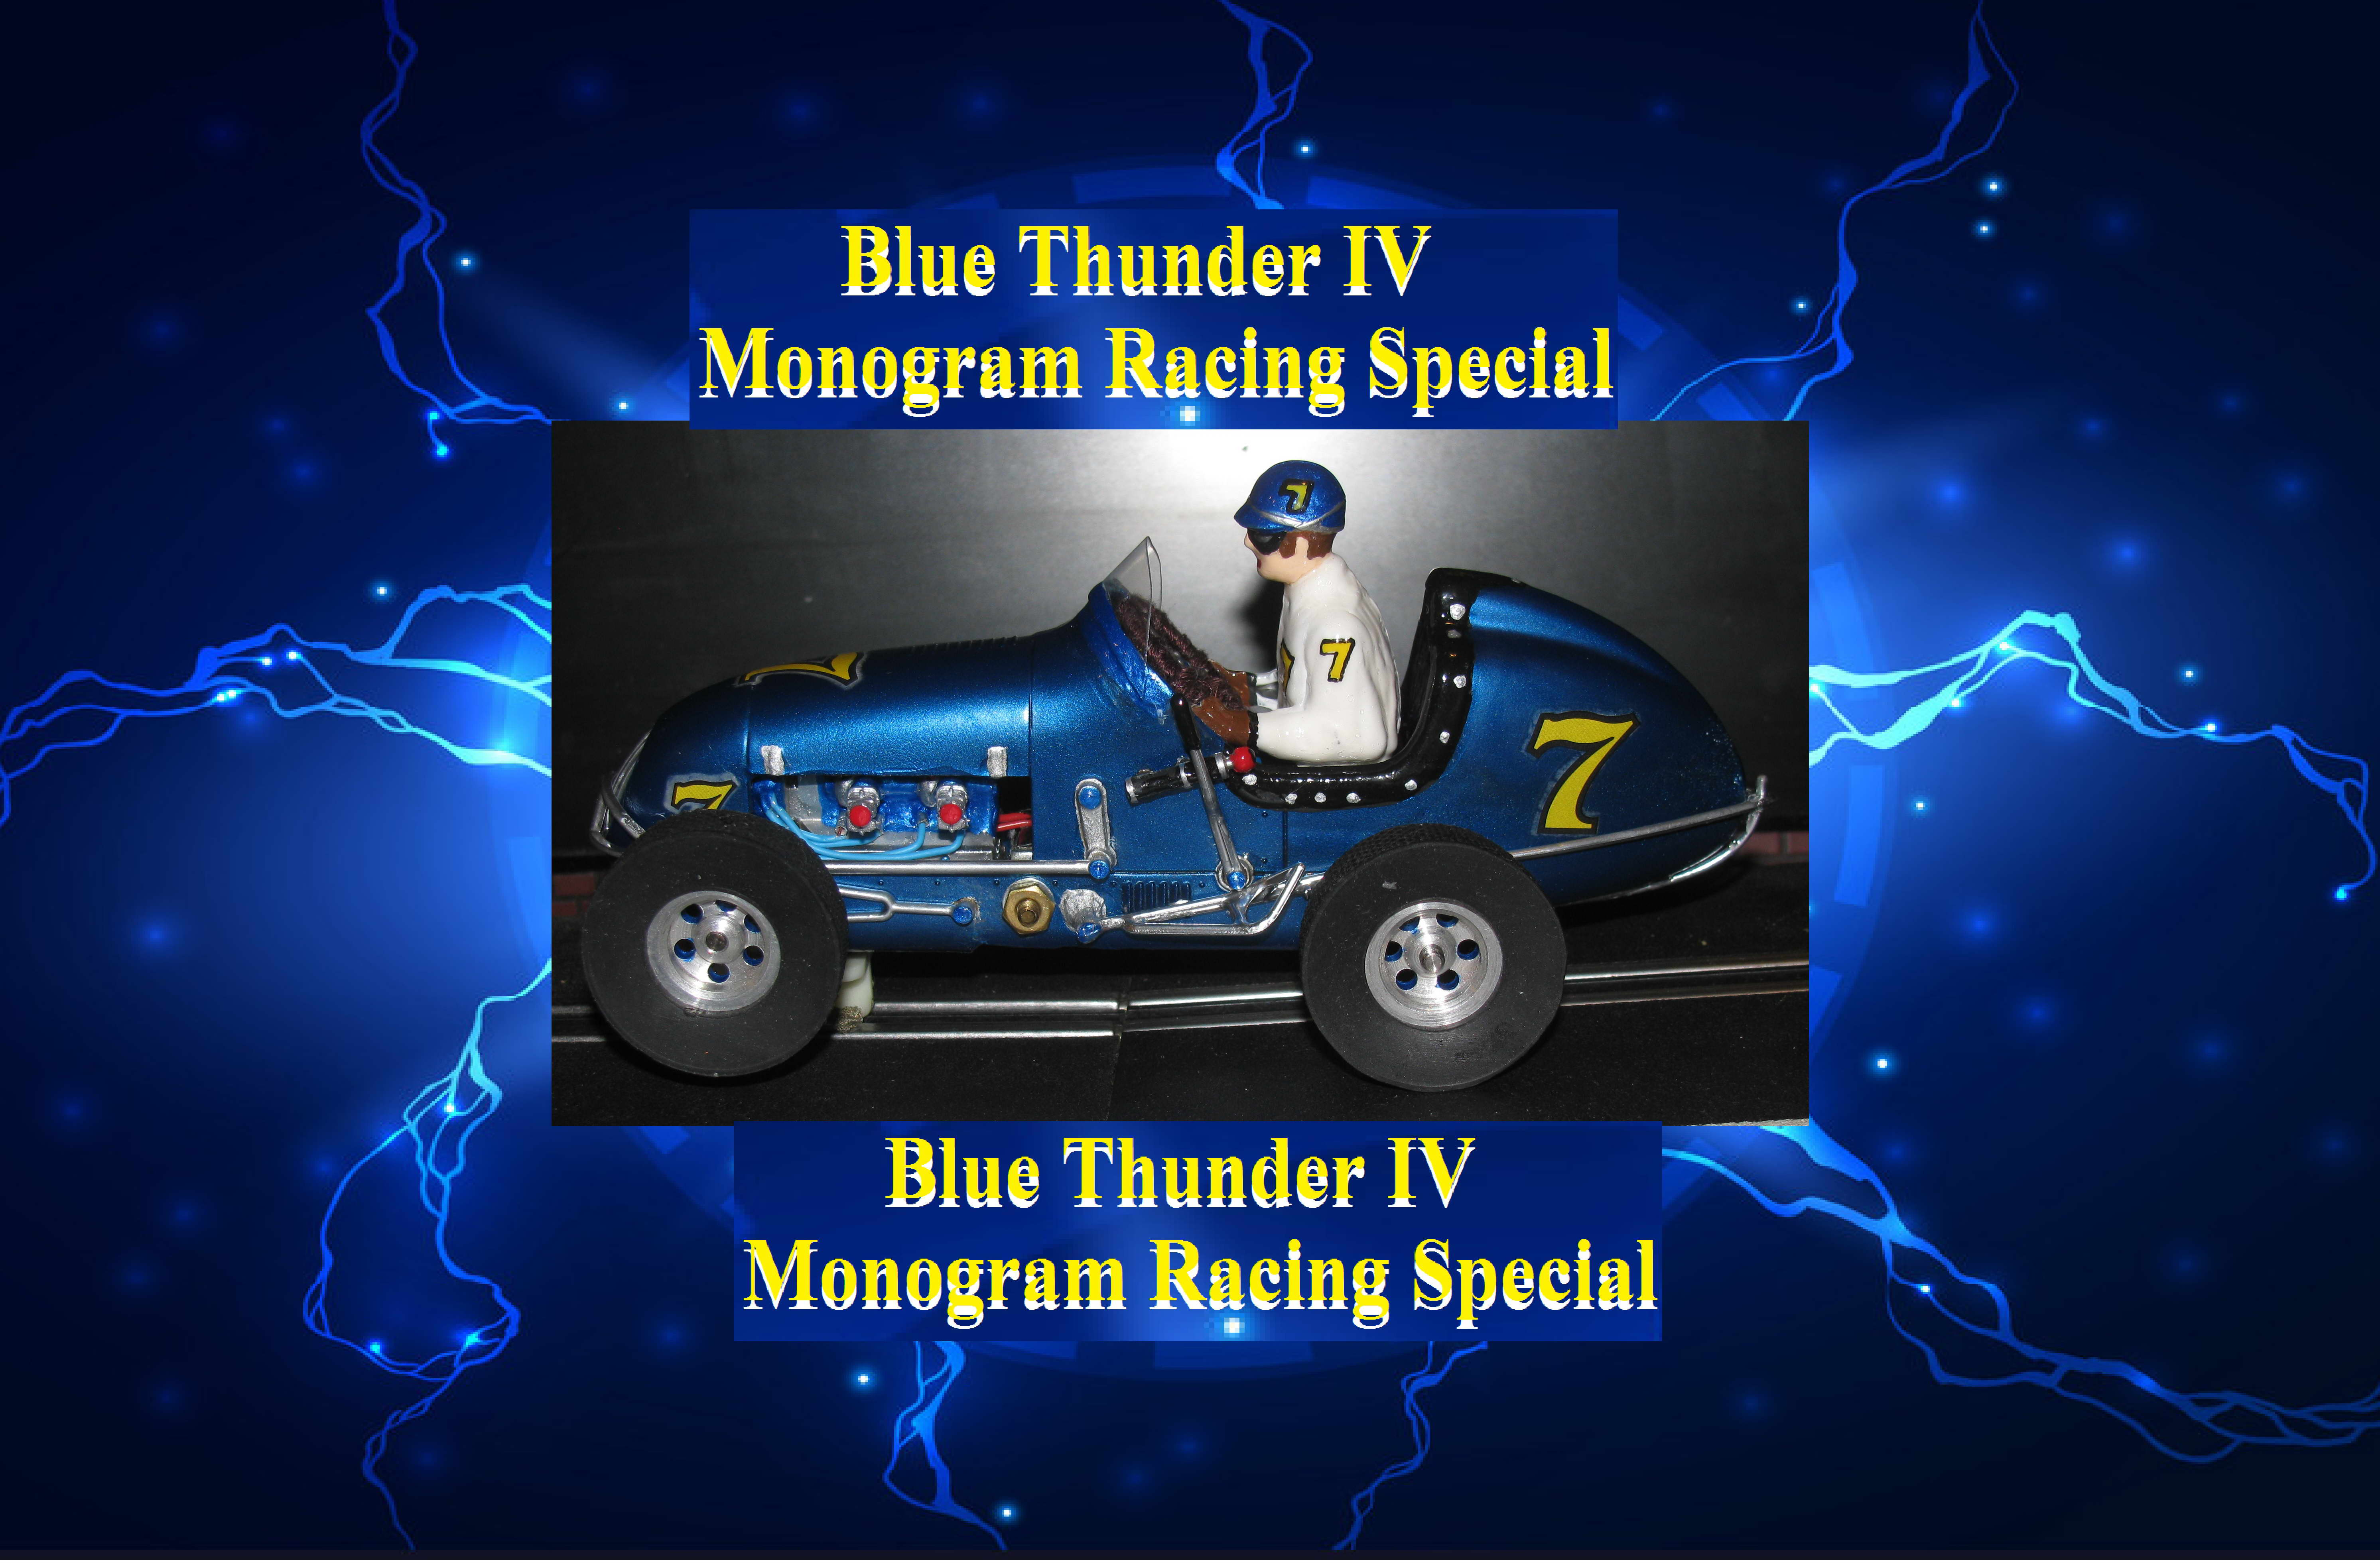 * SOLD * Monogram Midget Racing Special Blue Thunder IV Slot Car